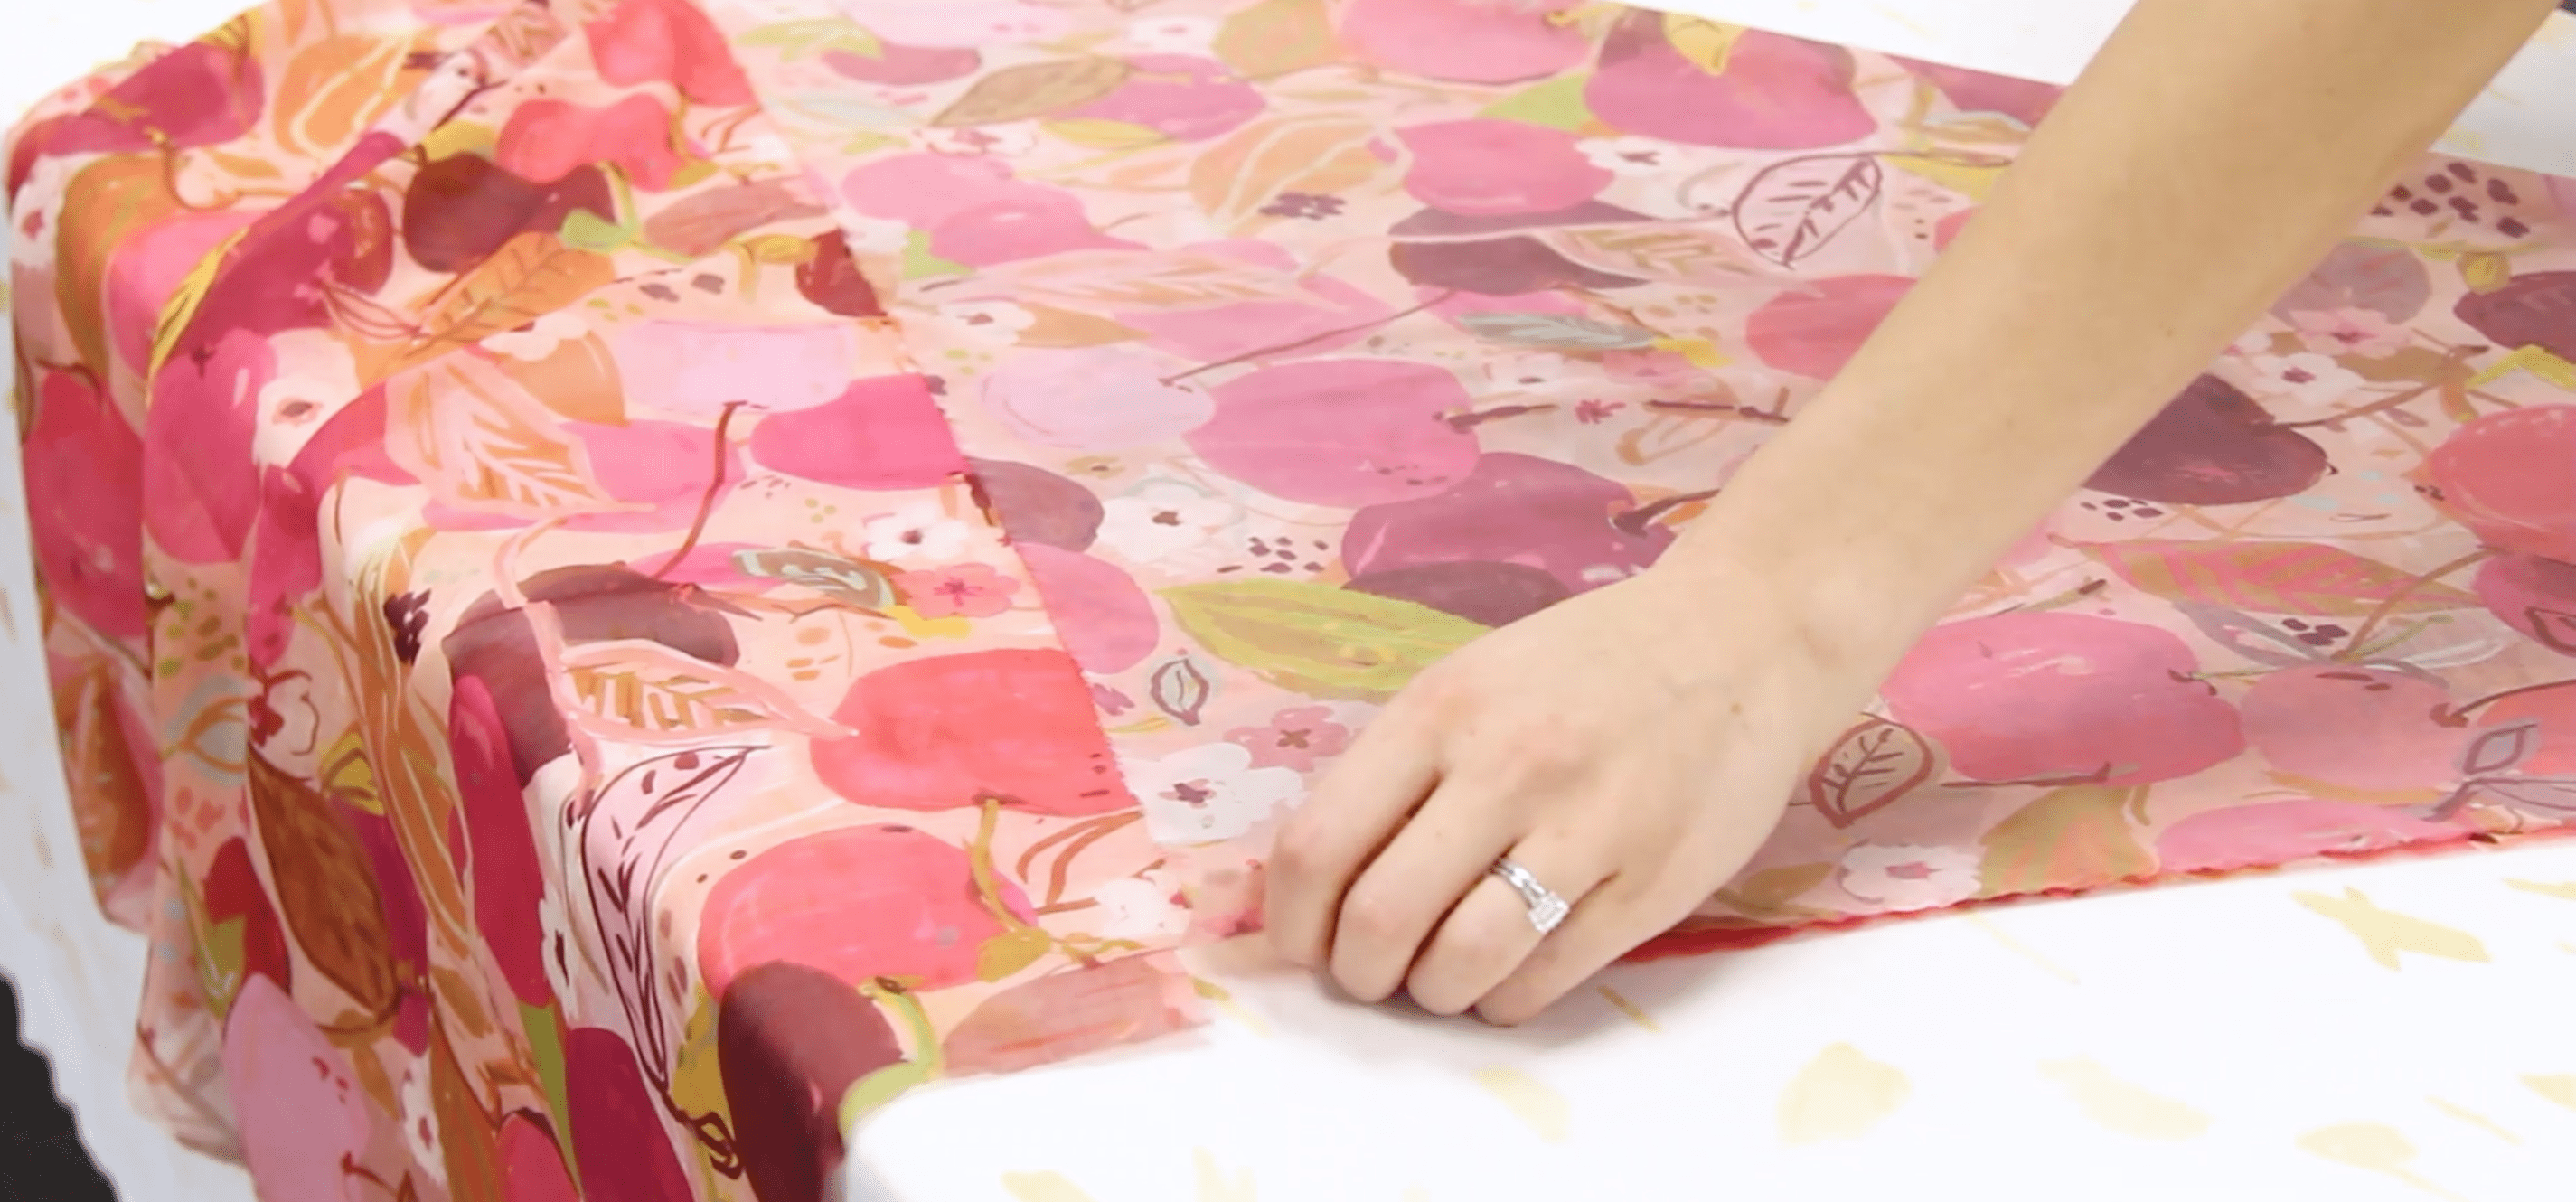 Creating an unhemmed square by snipping and ripping your fabric | Spoonflower Blog